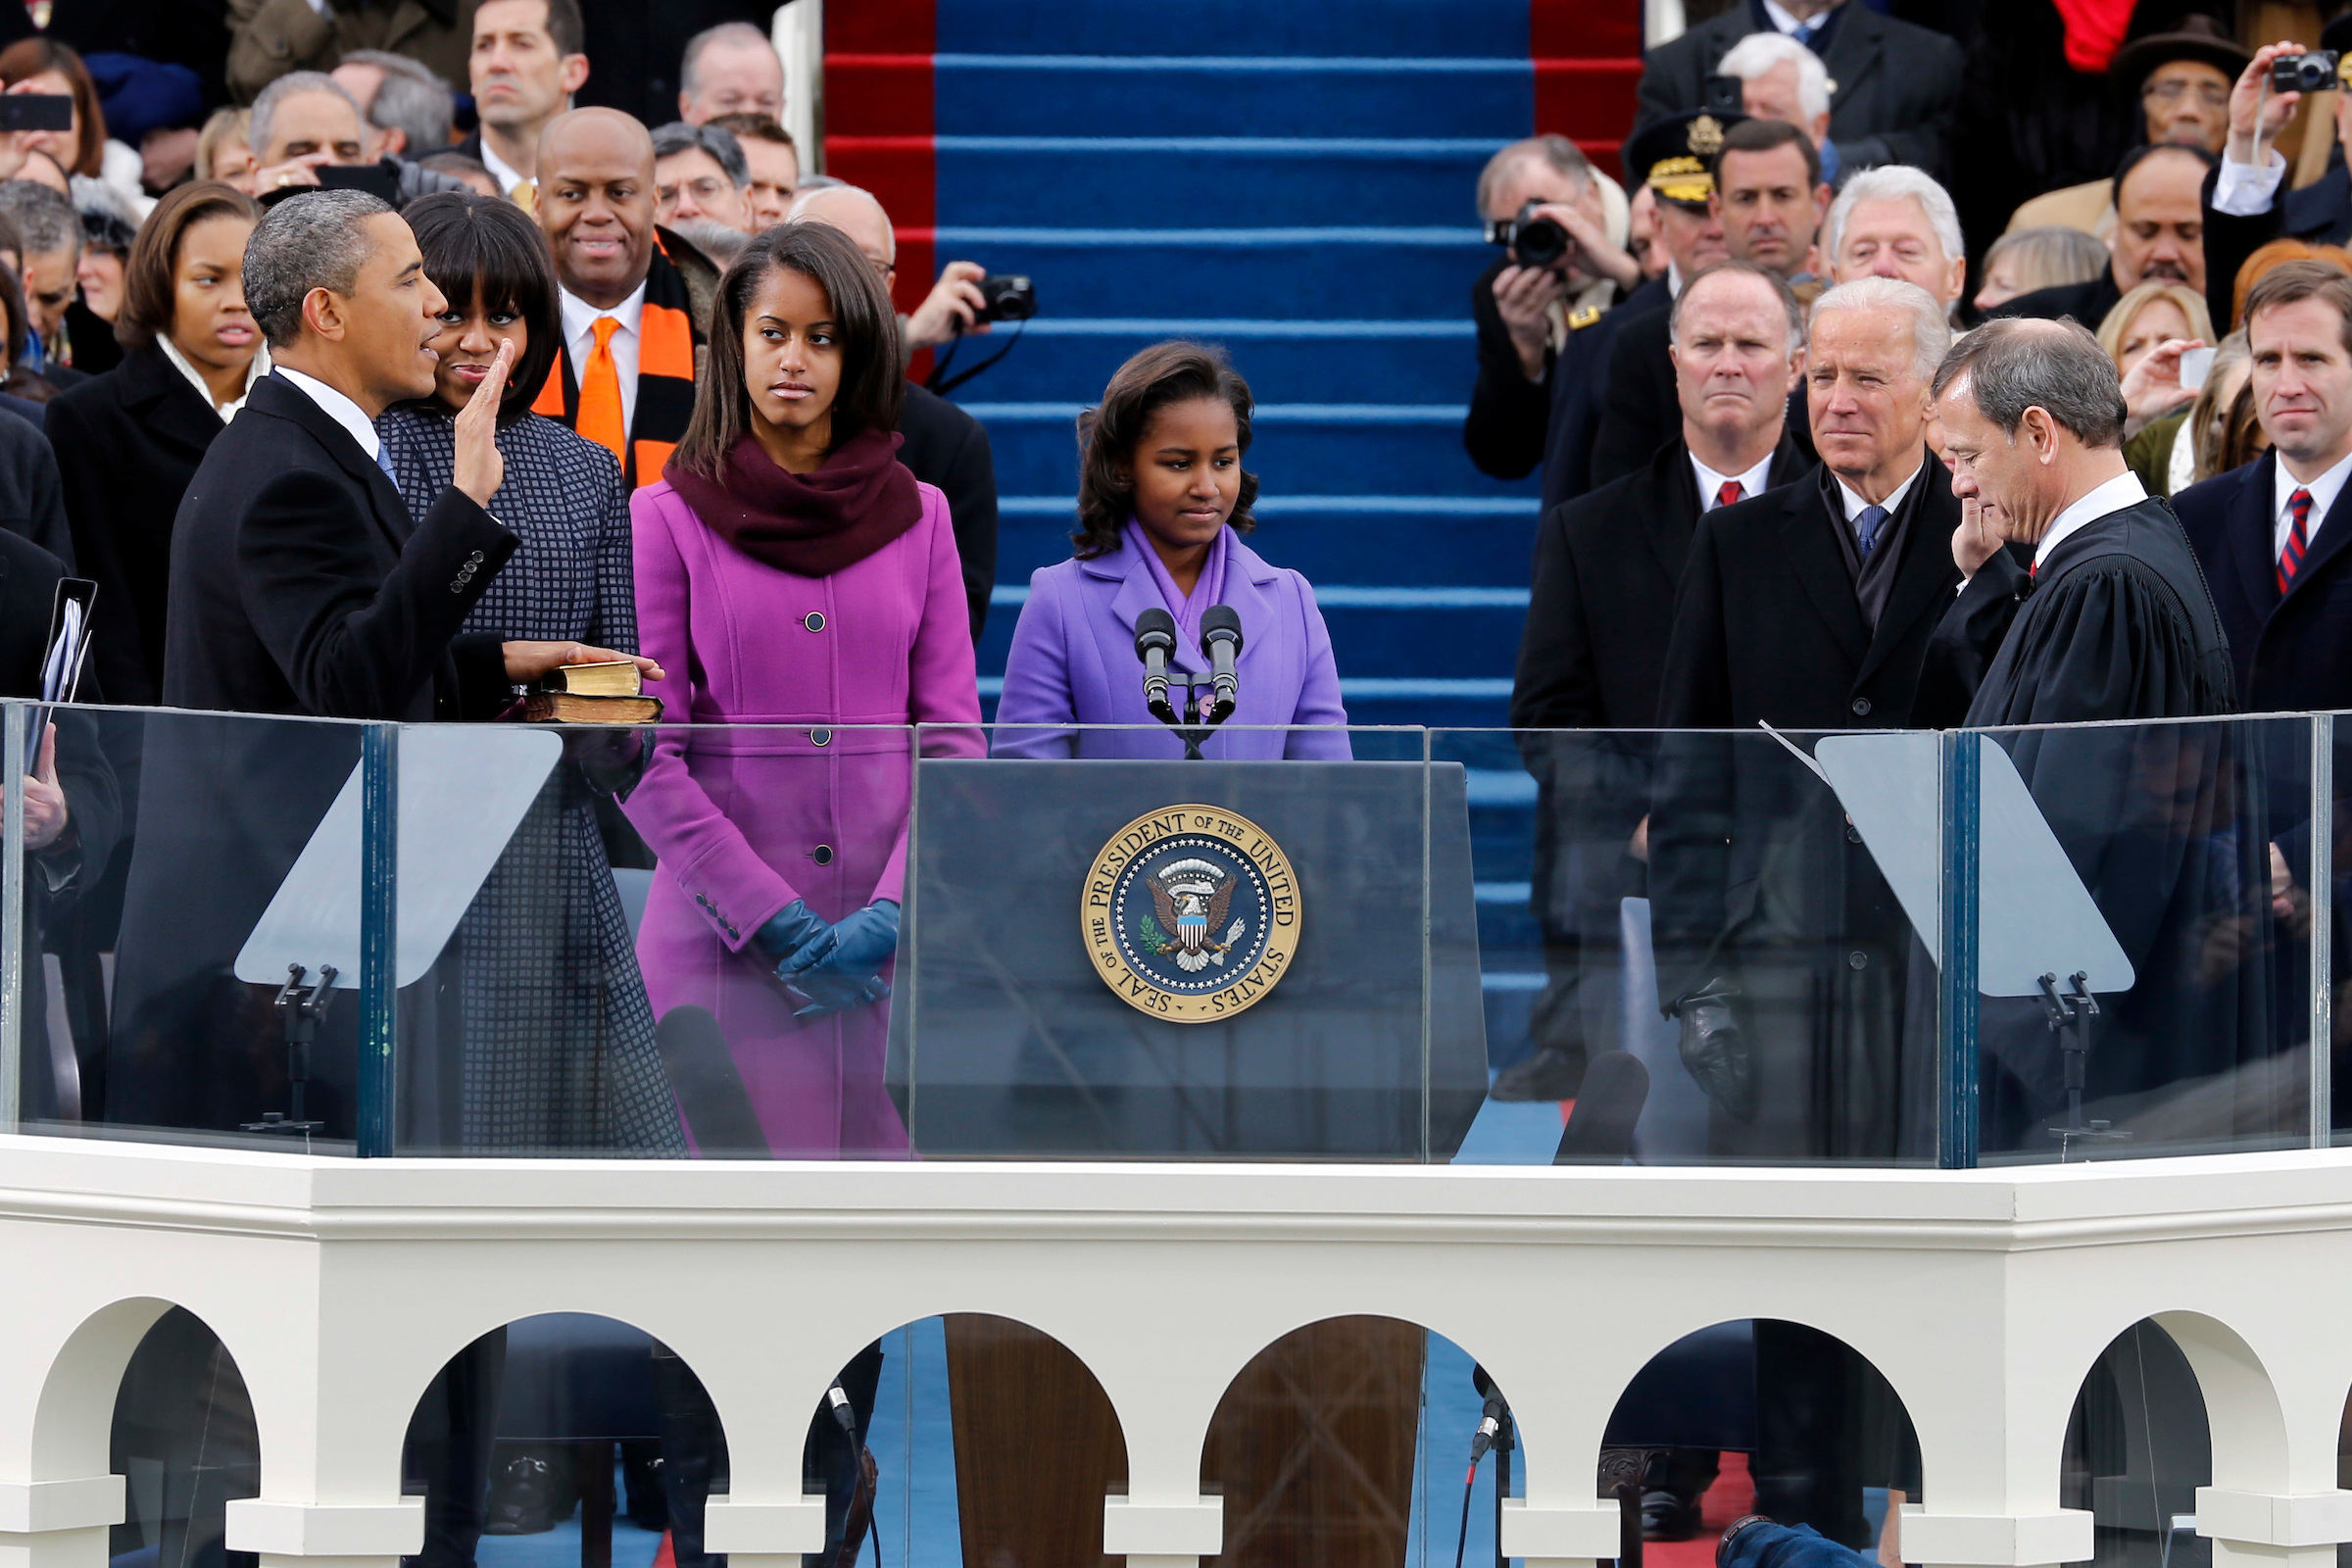 10 Quotes From the Last 10 Presidential Inaugurations